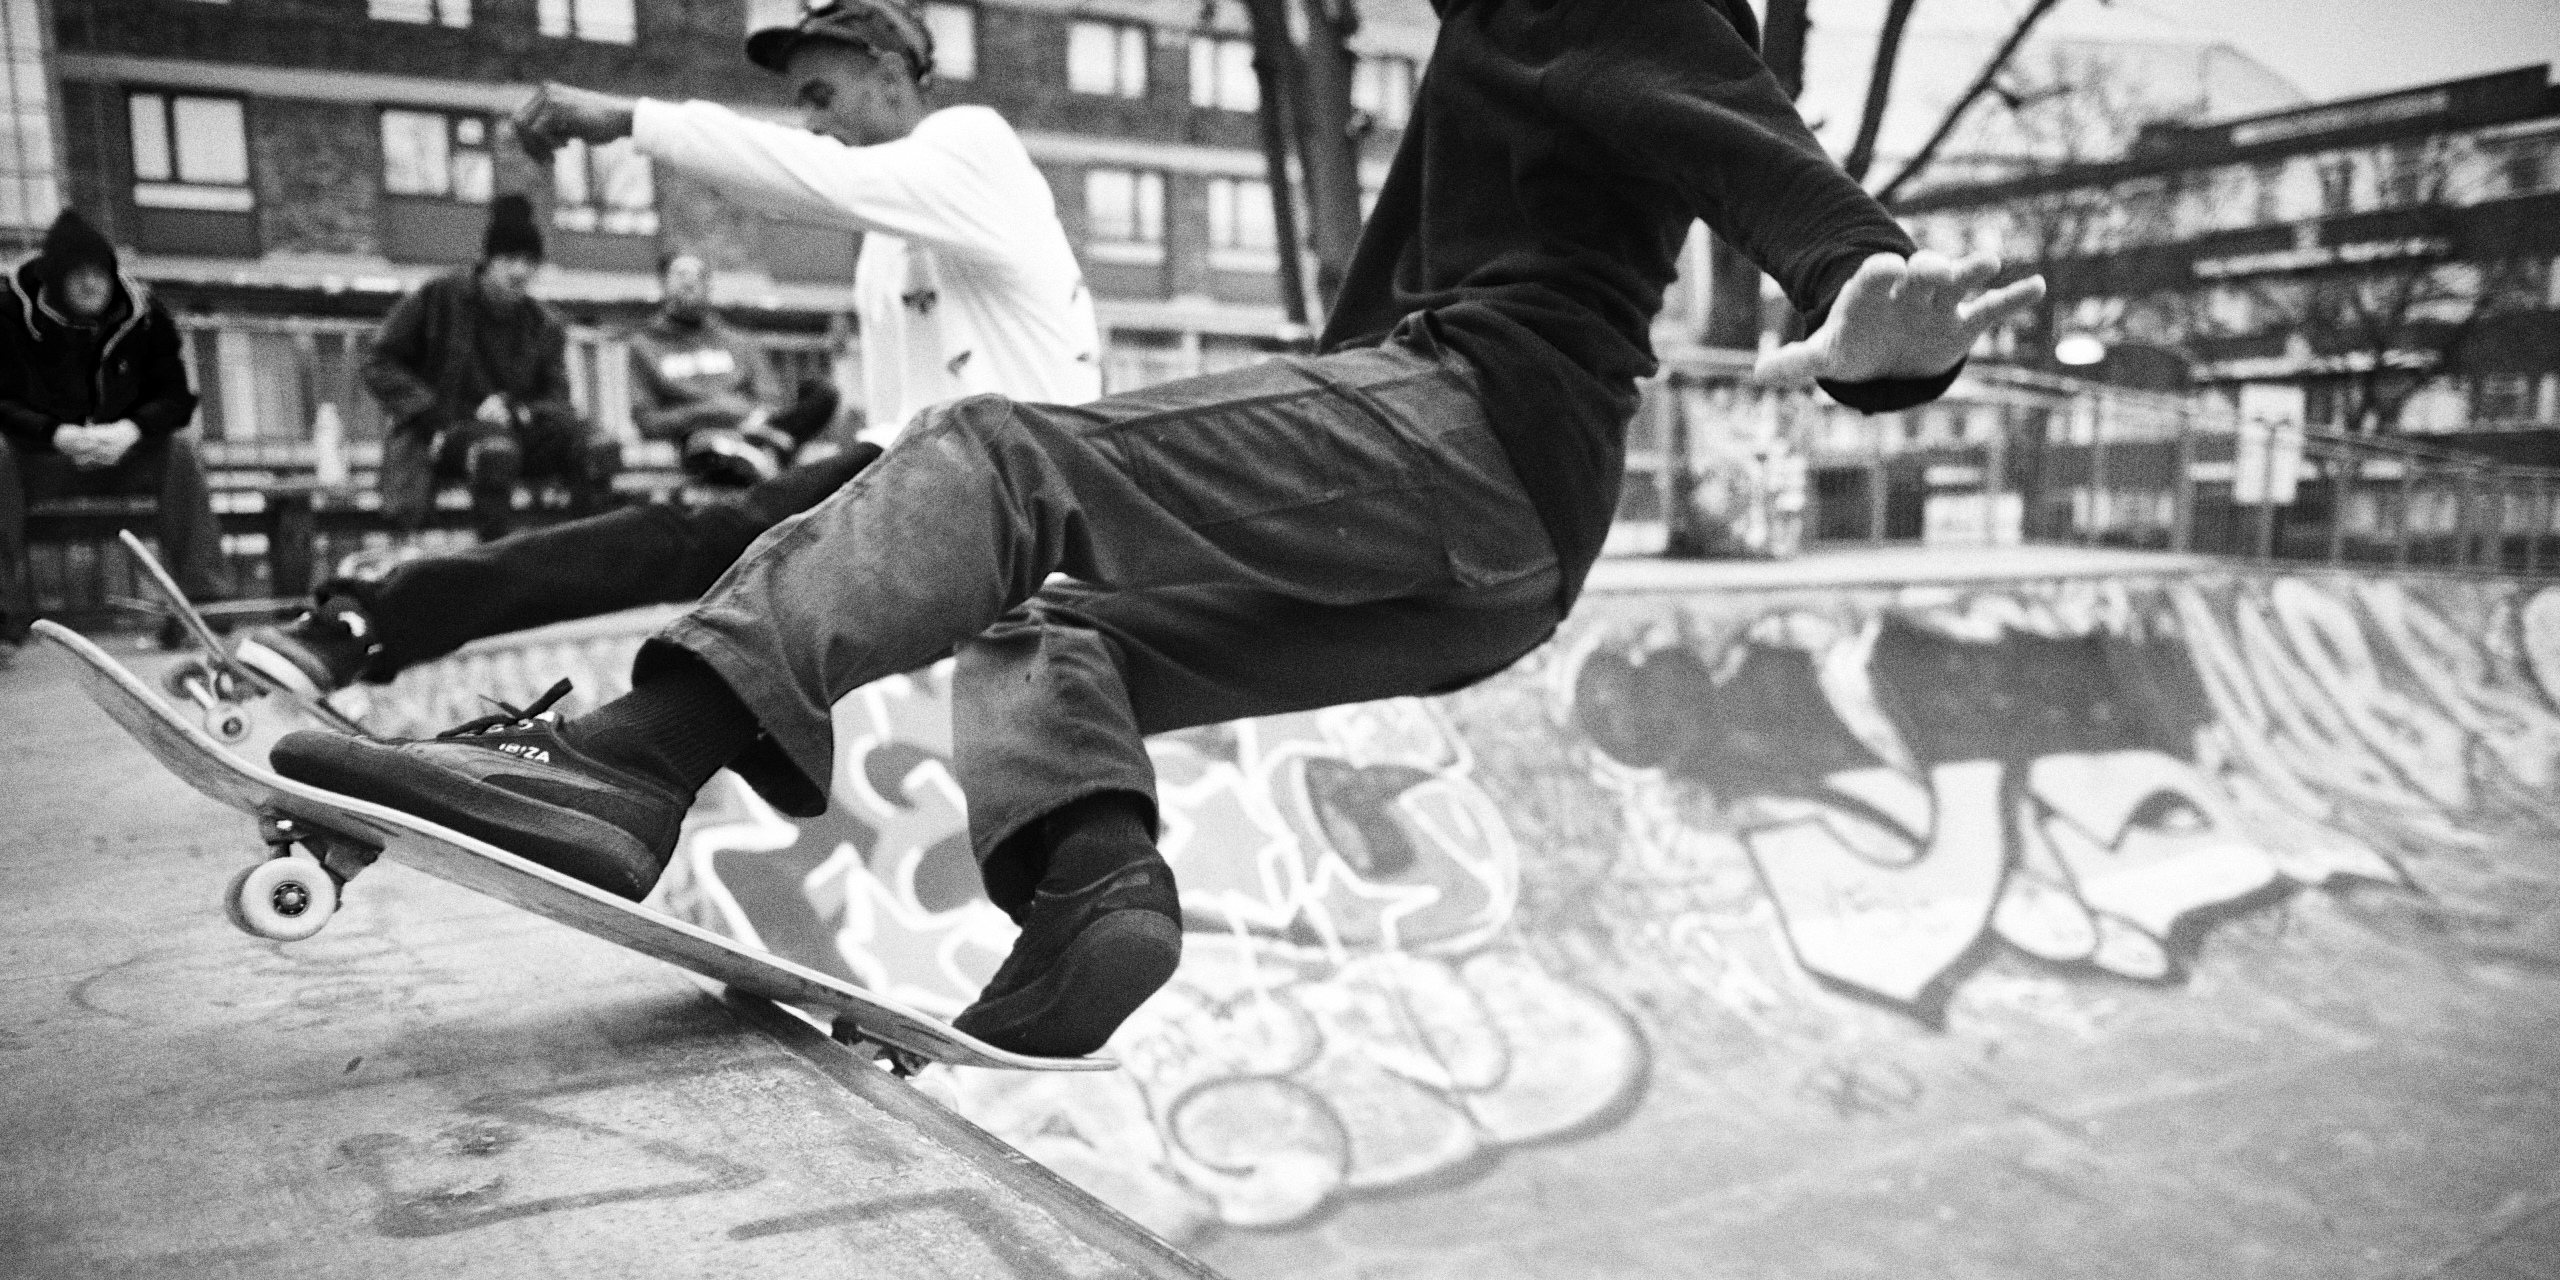 Brixton-skate-park-Matt-Stansfield-Lifestyle-Youth-Culture_14